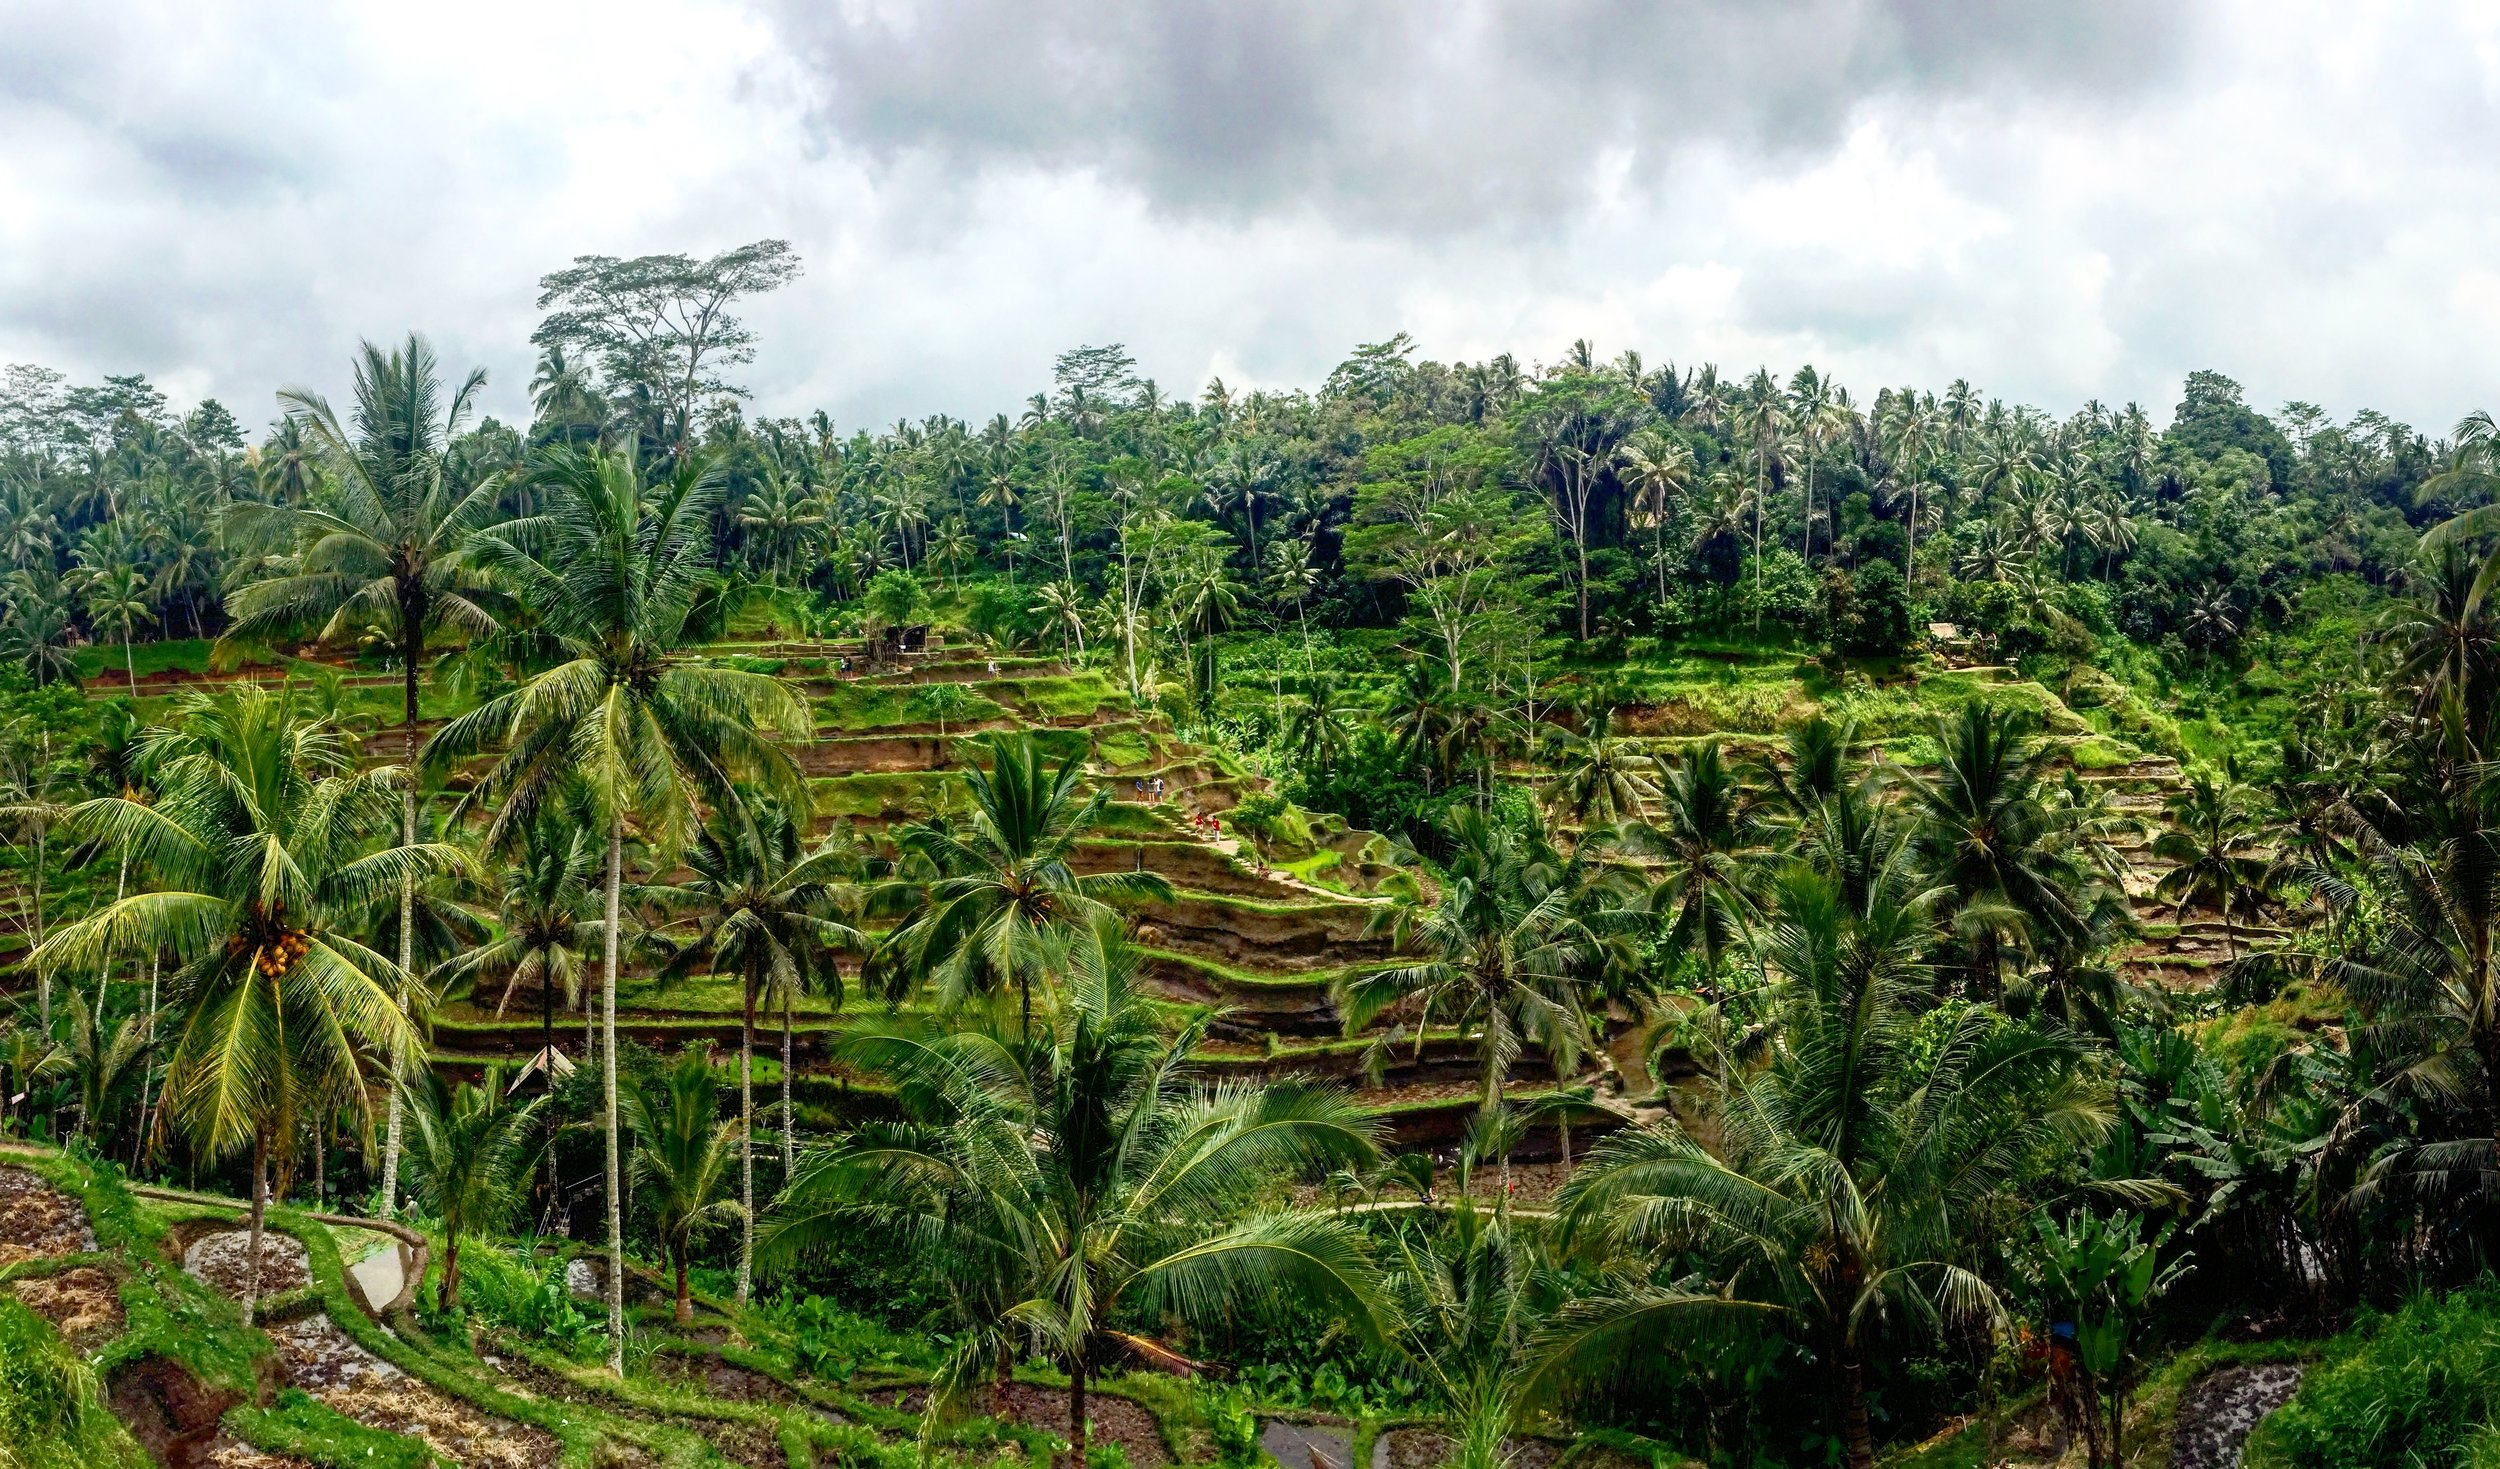 This is where I was before receiving the message from my mom about my Grandma | Ubud, Indonesia